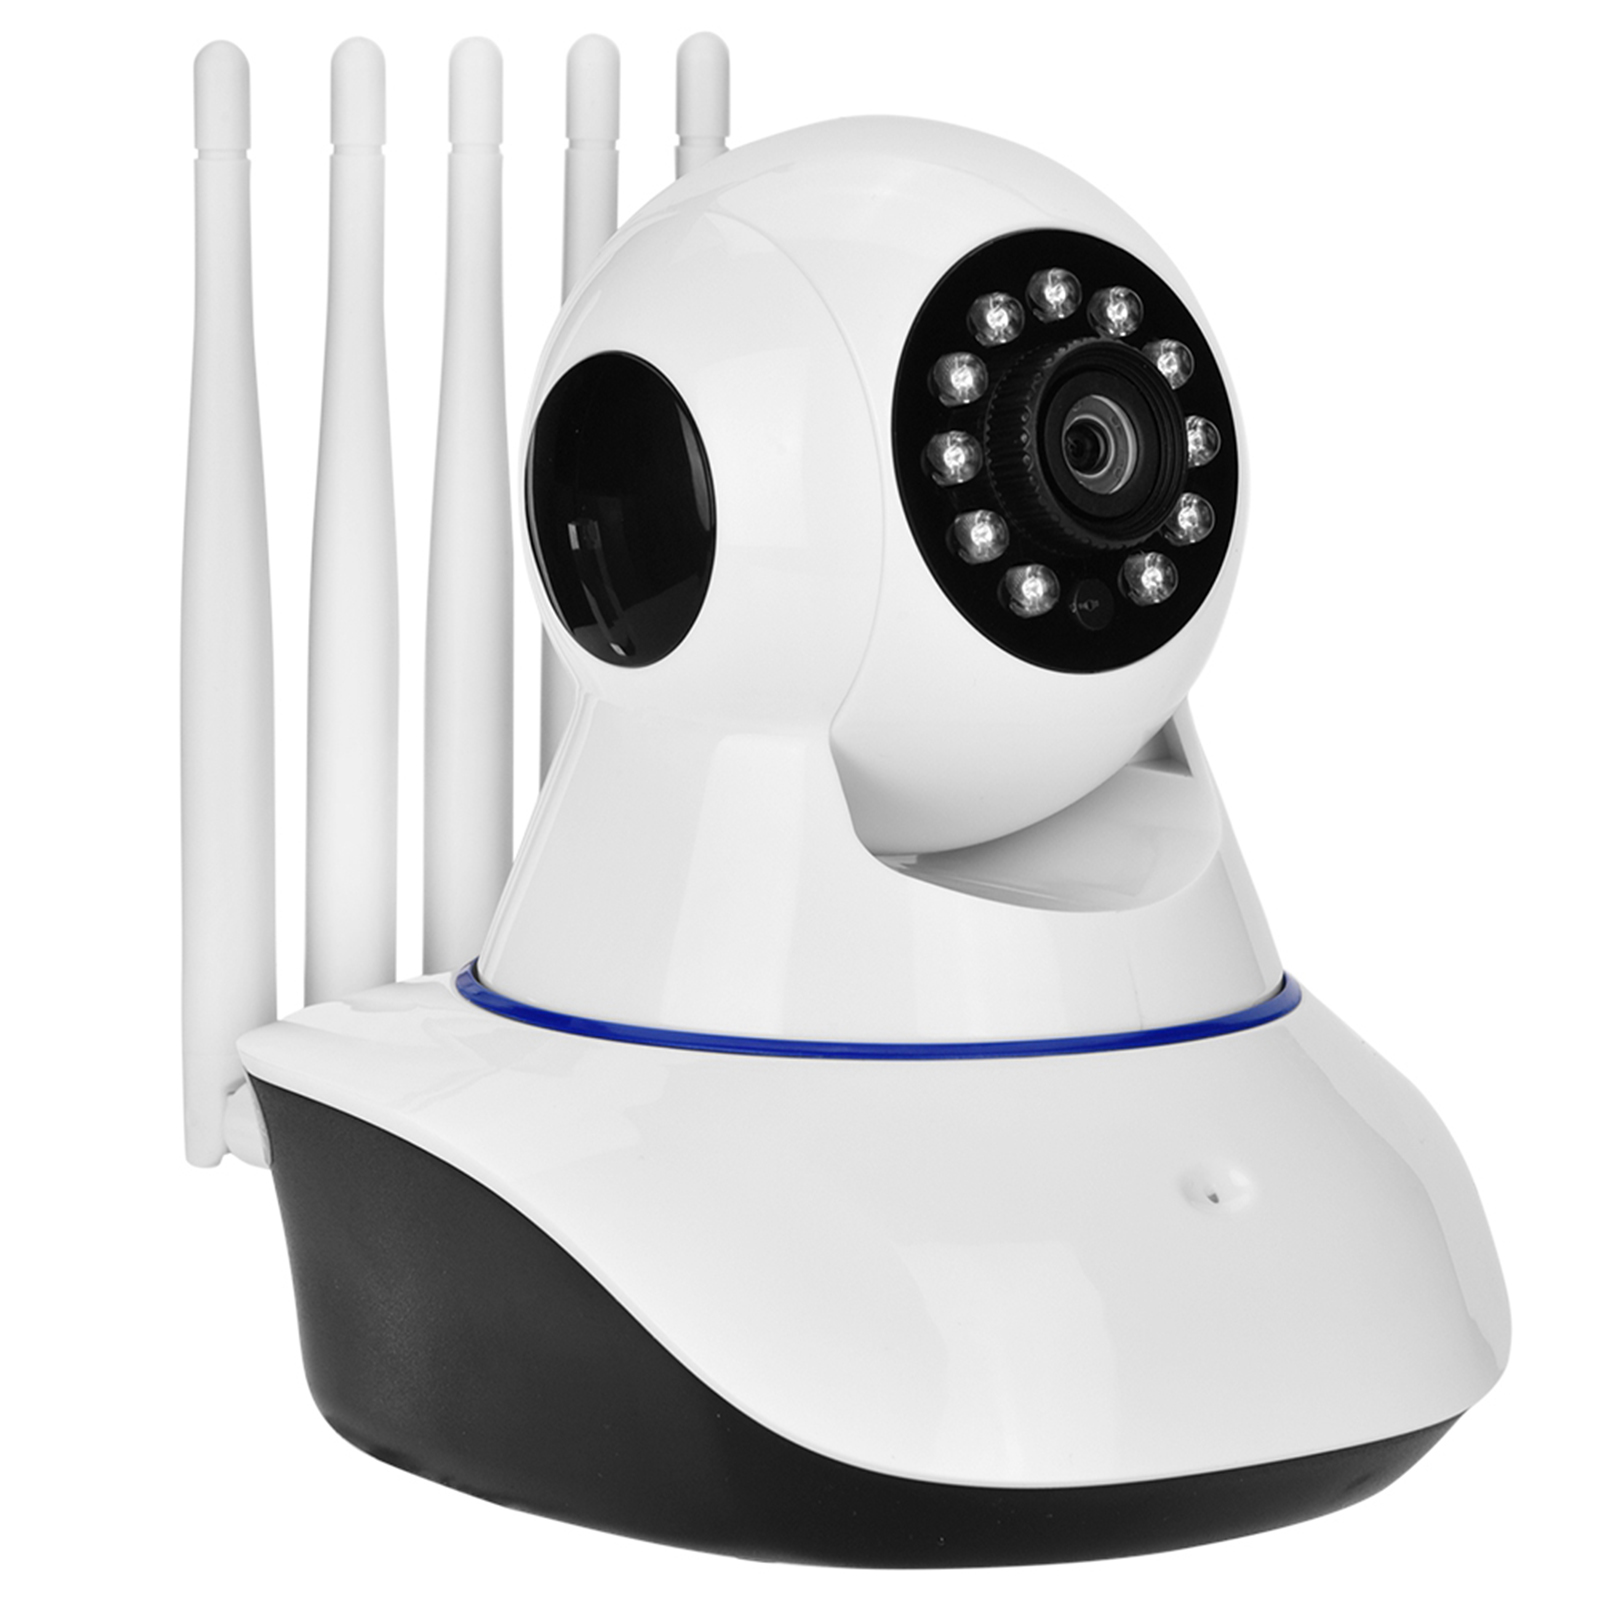 Wireless-Baby-Monitor-3-2-034-LCD-2-4G-2-Way-Audio-Video-Security-Camera-Night-View thumbnail 27